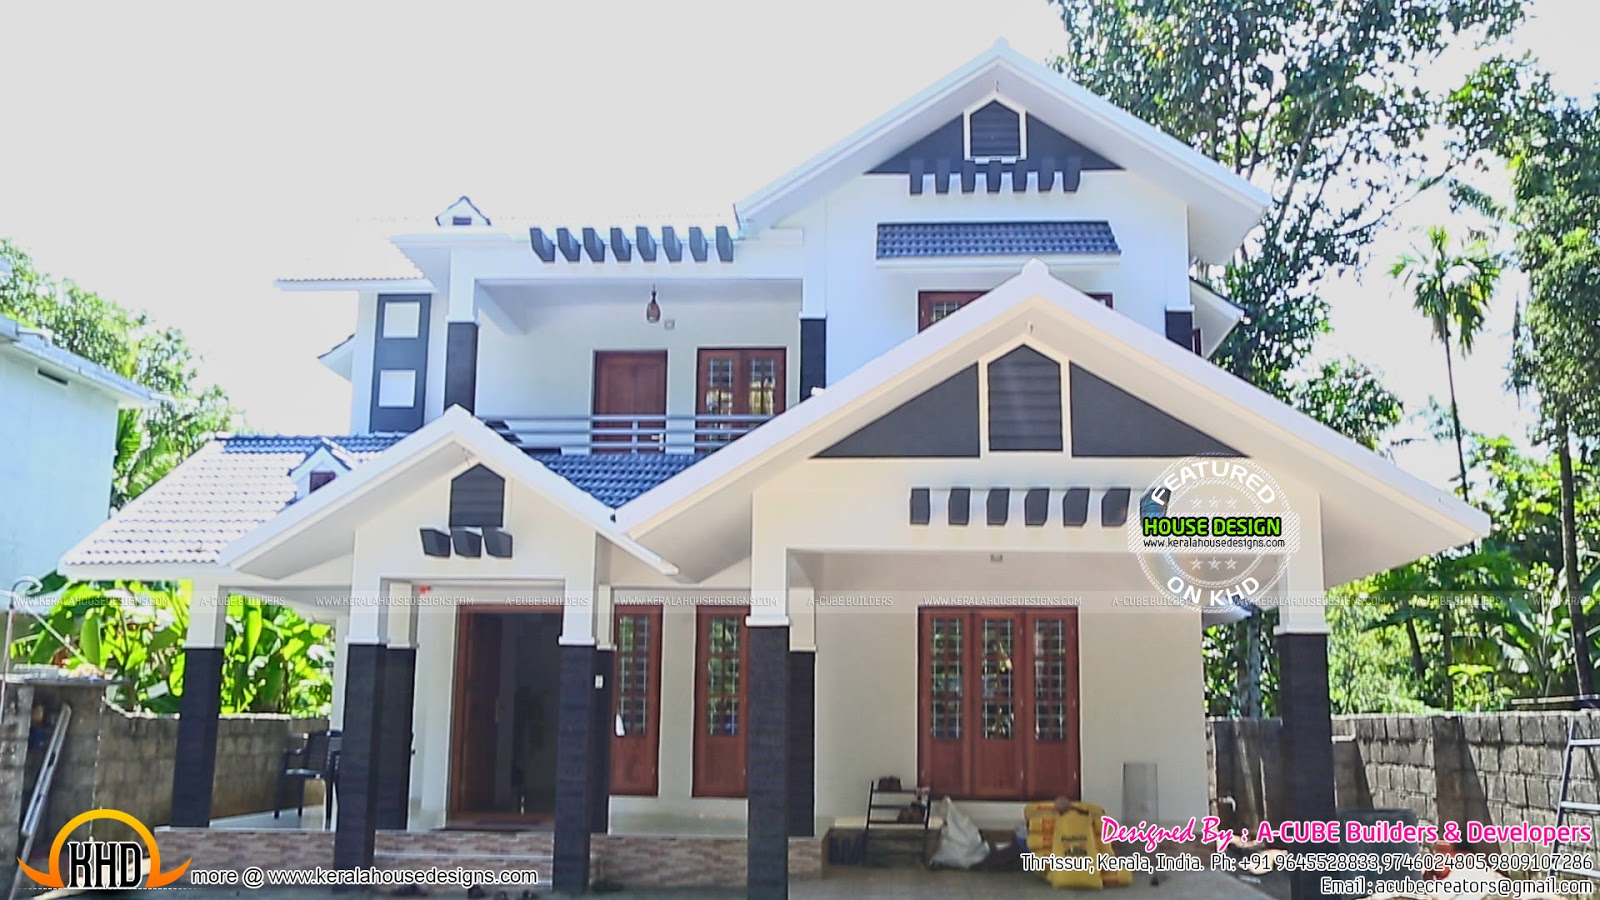 New house plans for 2016 starts here kerala home design for Kerala house models and plans